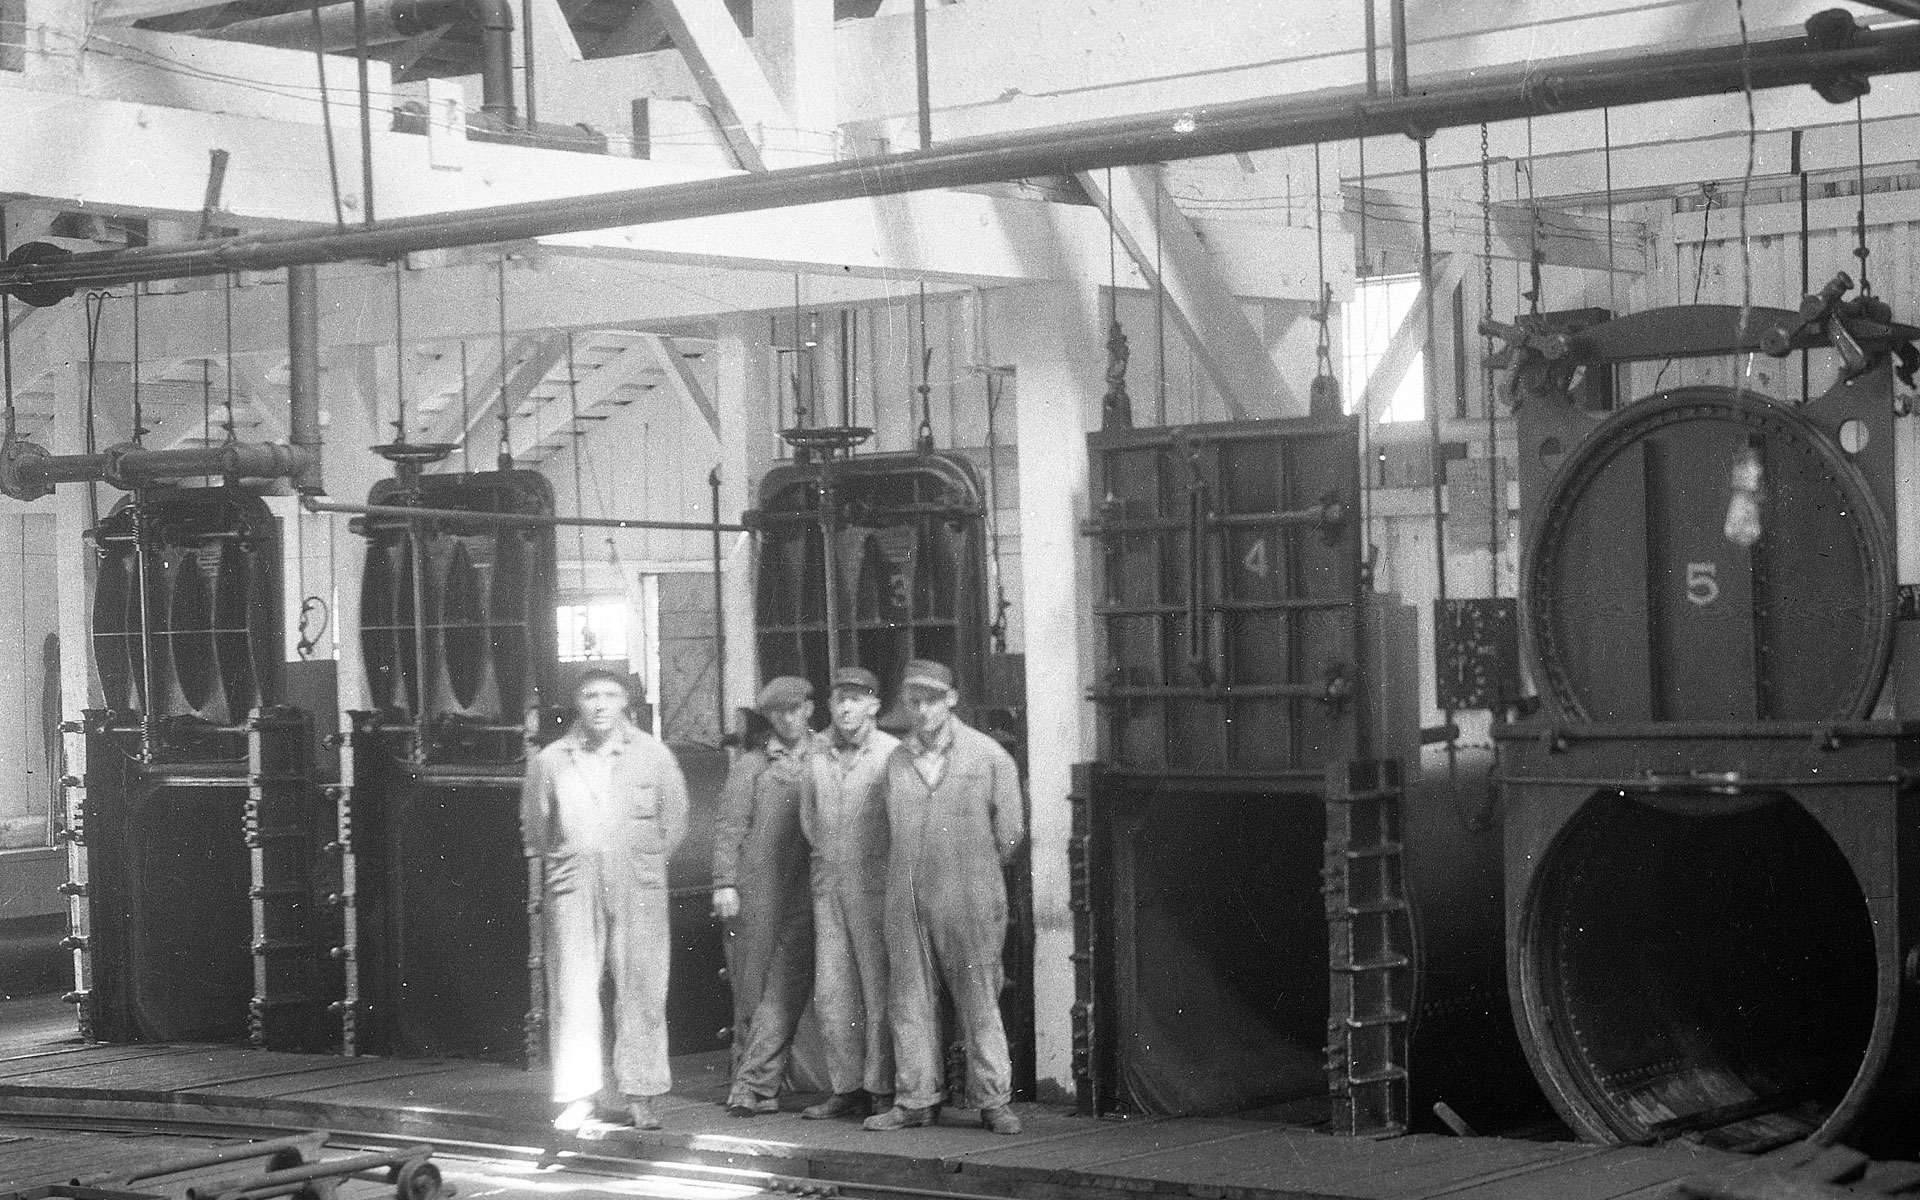 Four men stand in front of five open, empty retorts.